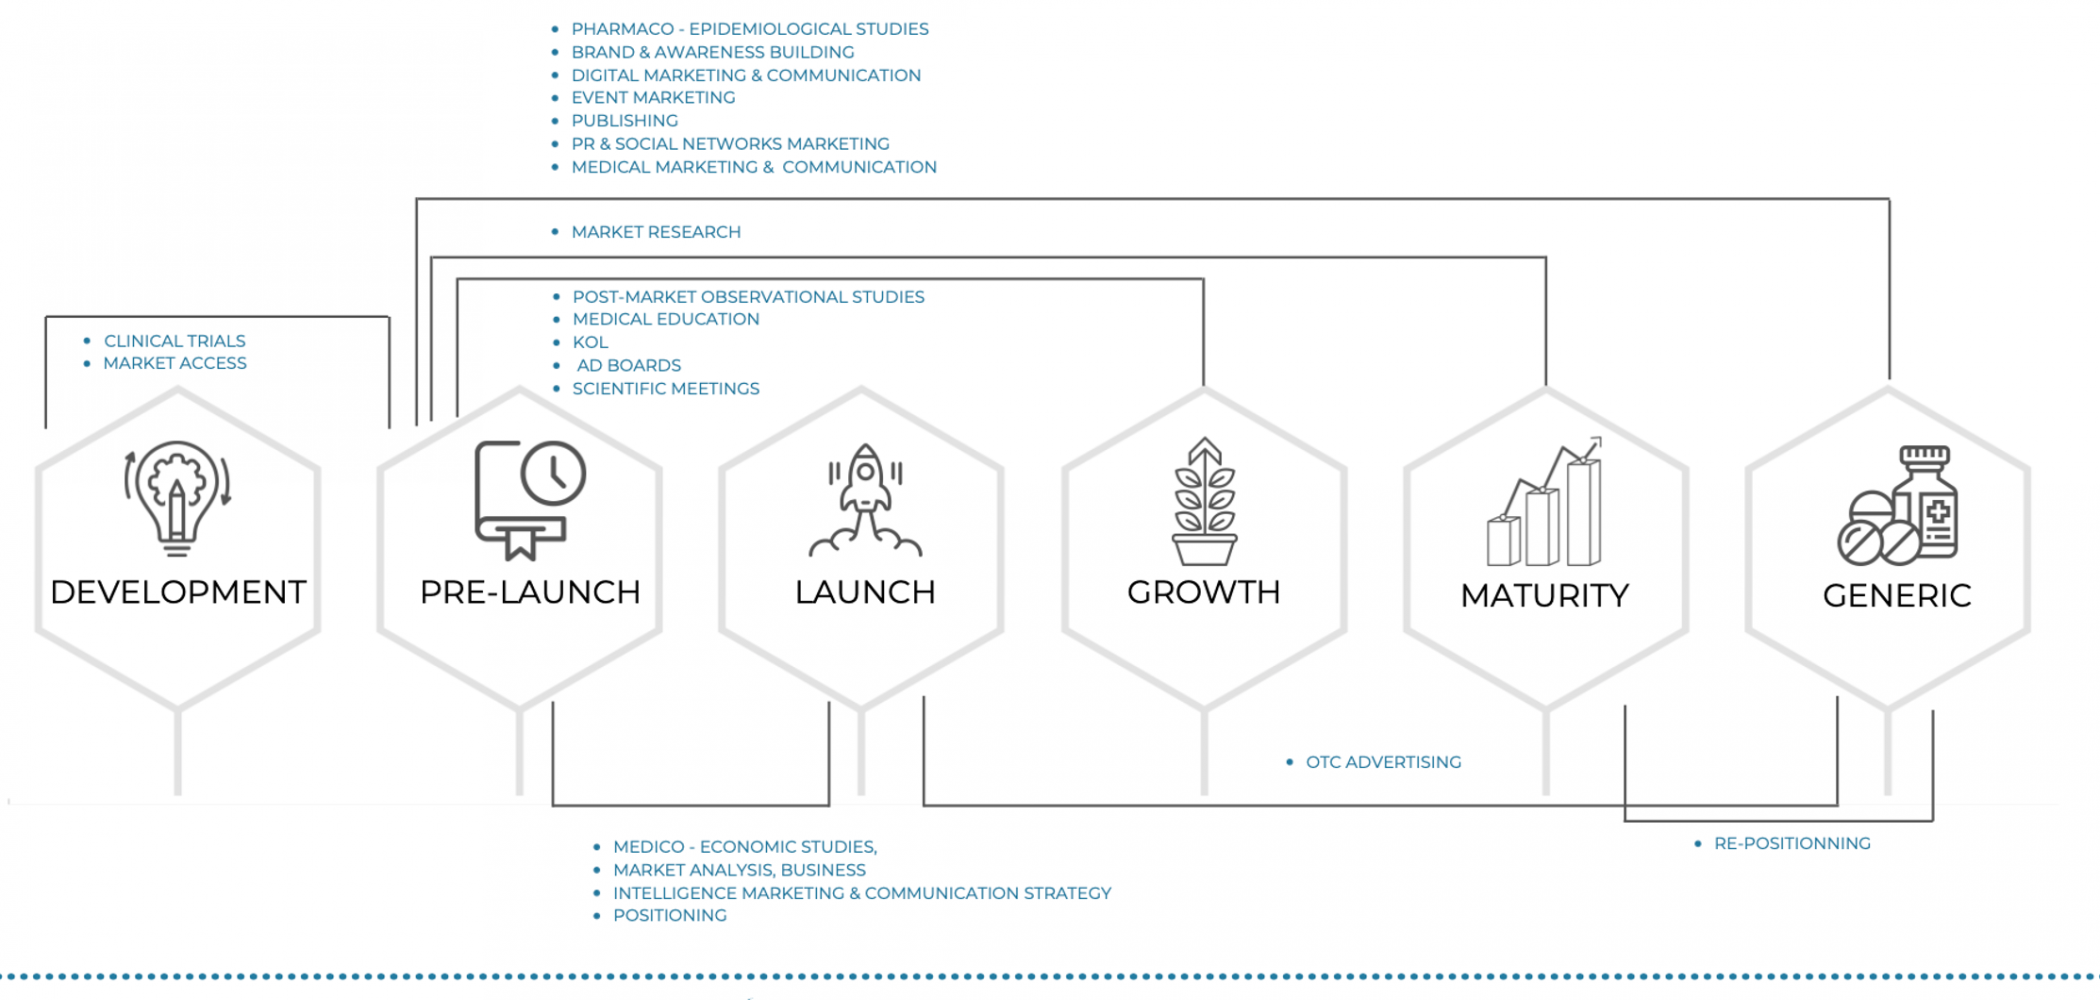 Vivactis group value chain